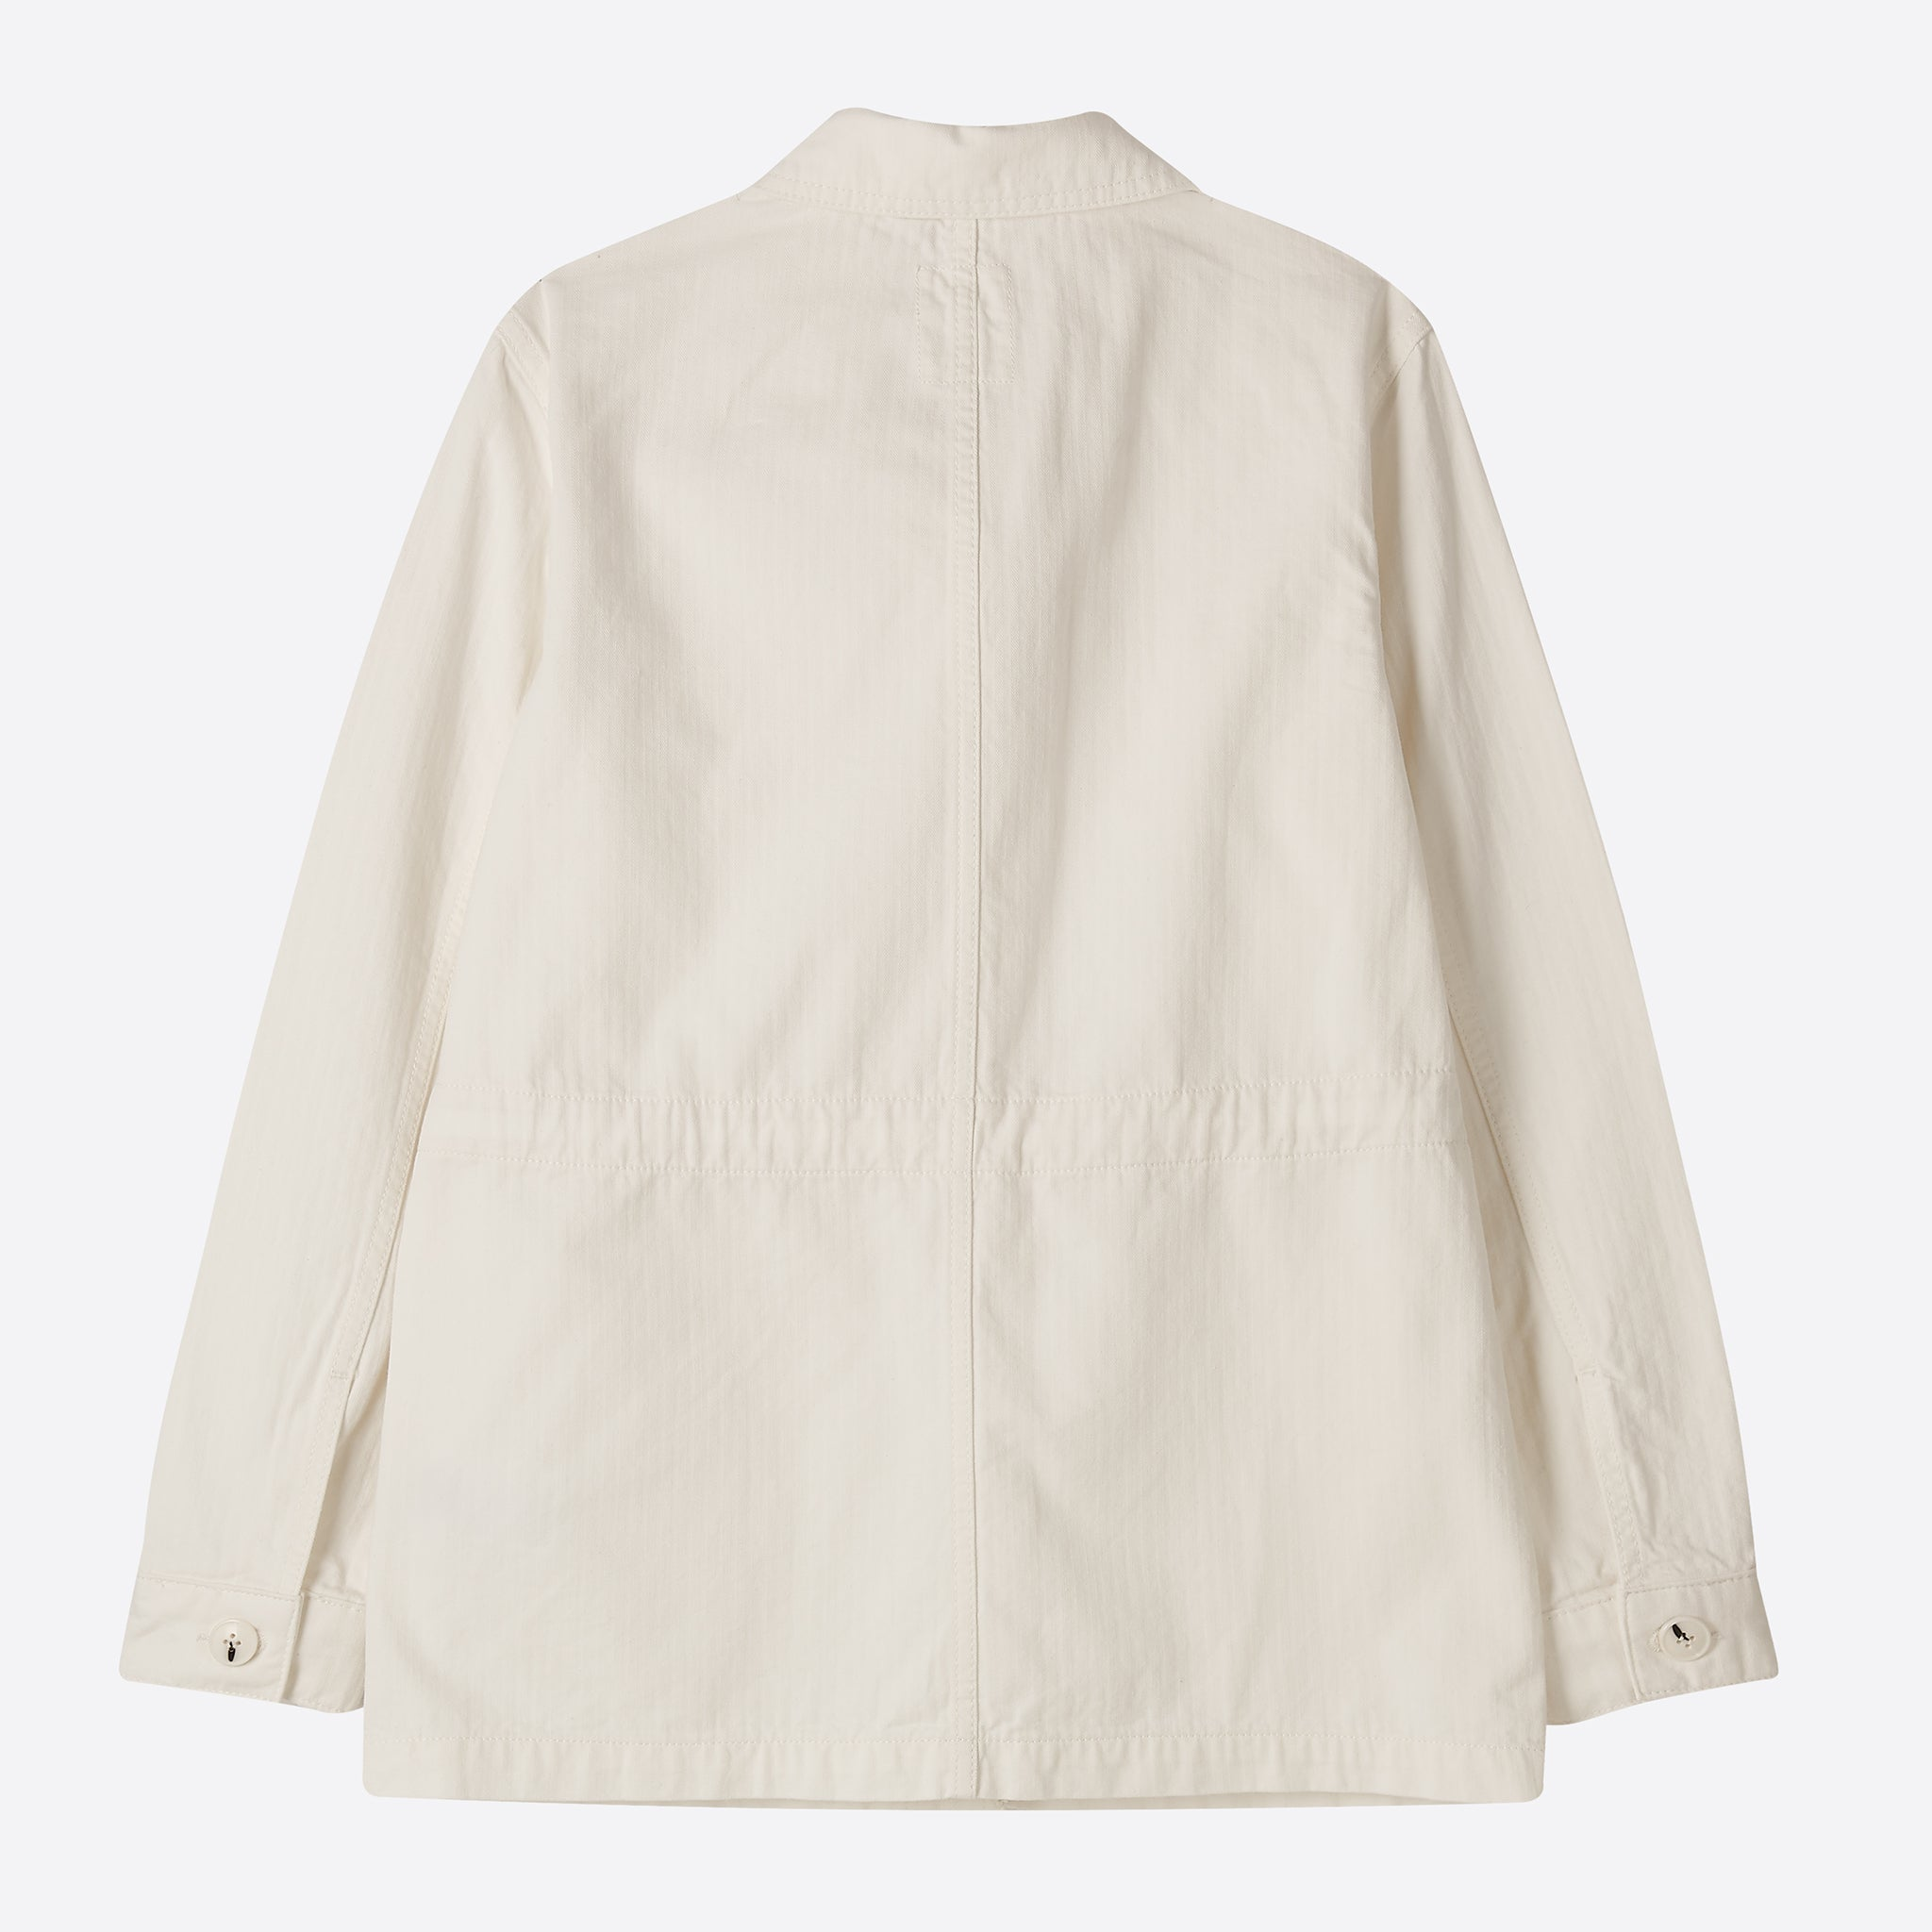 Wood Wood Gretchen Jacket in Off White